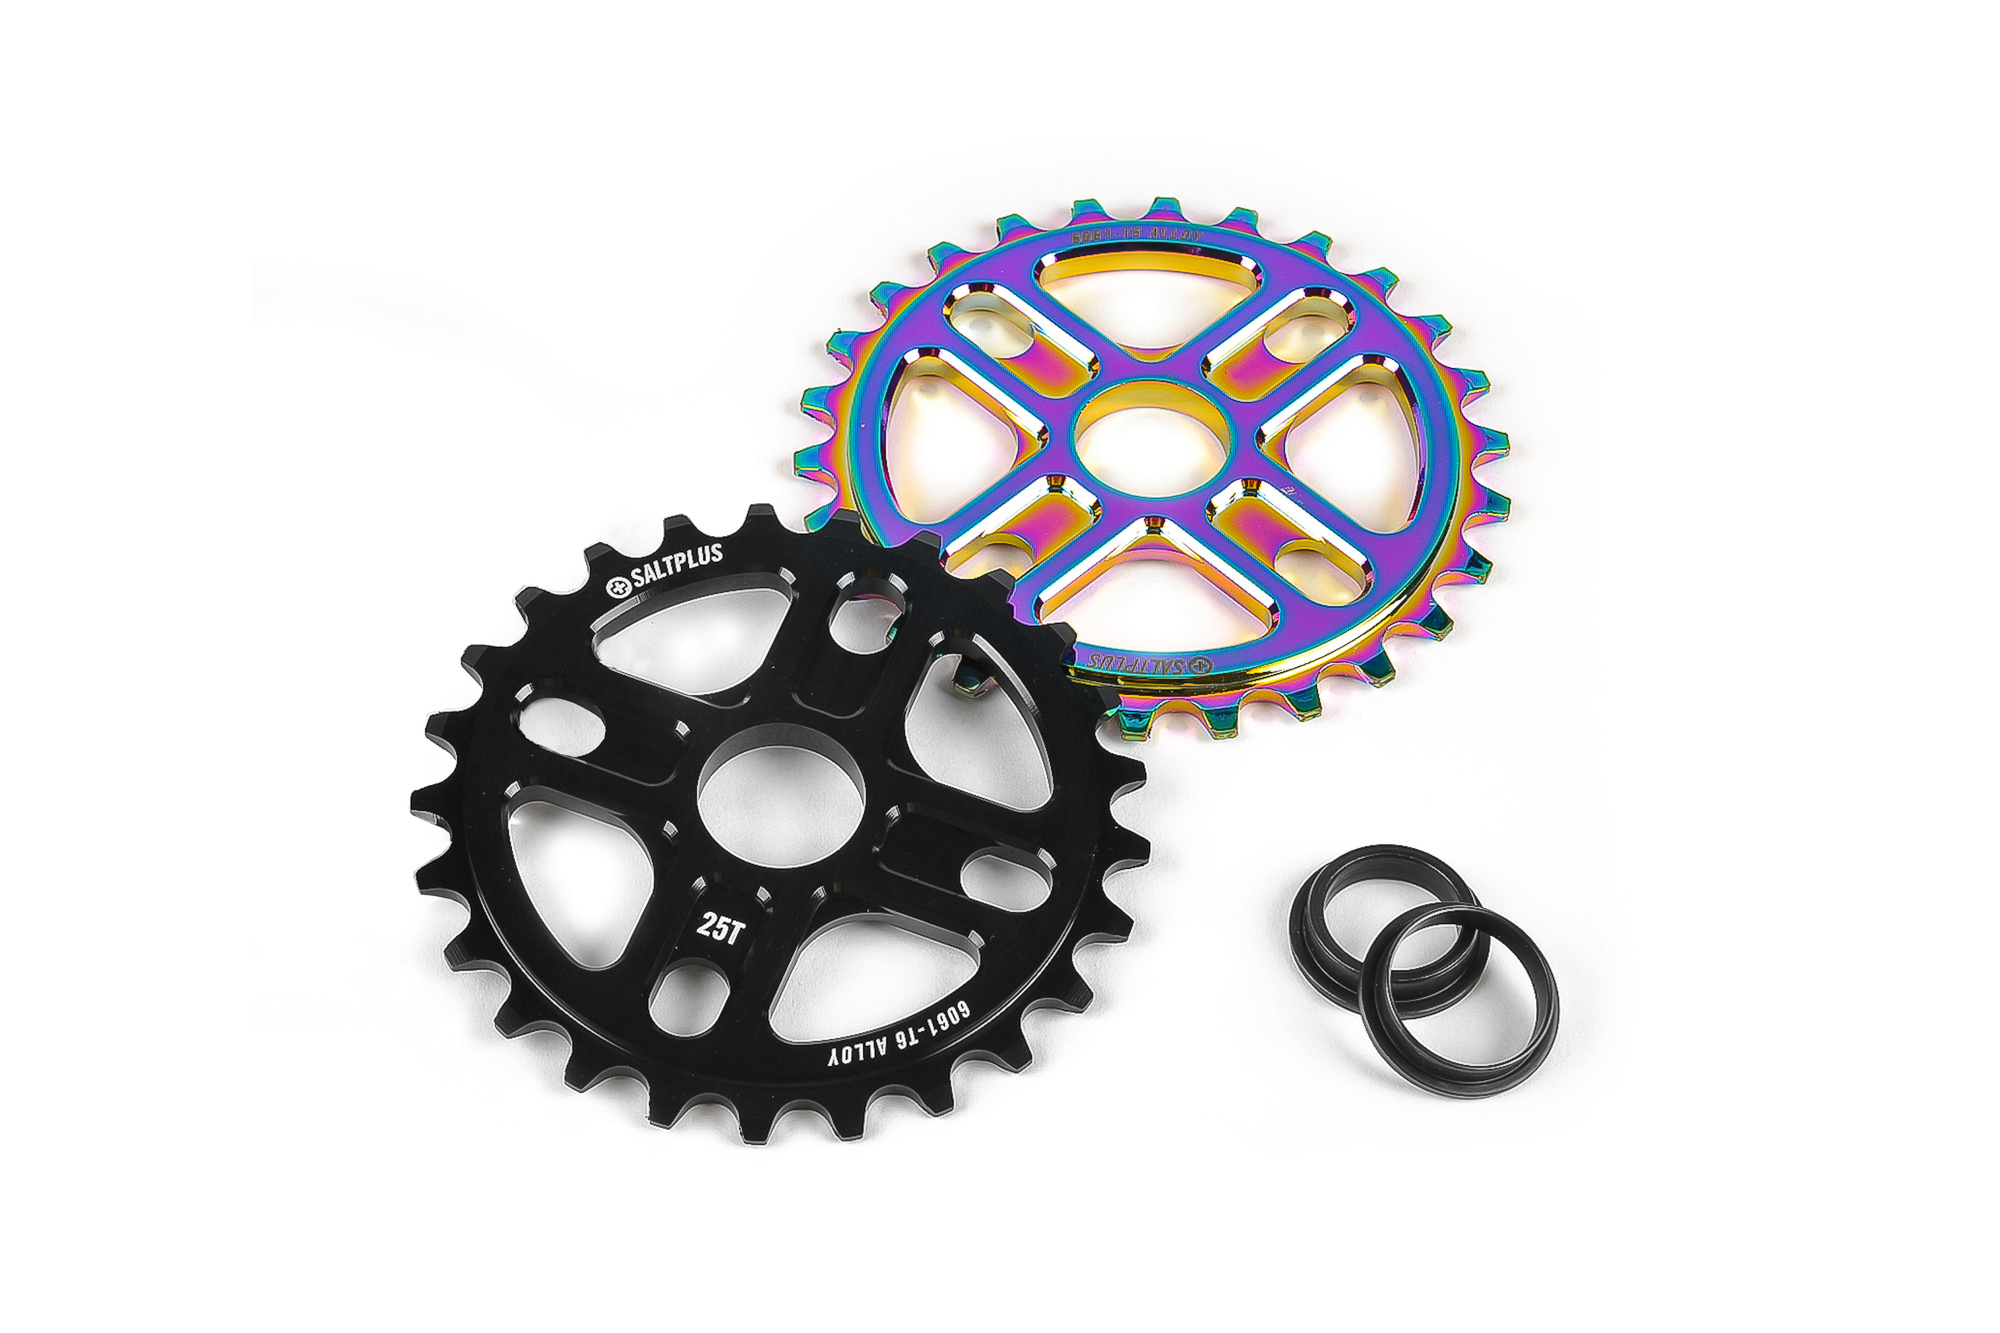 SaltPlus_Manta_sprocket_group